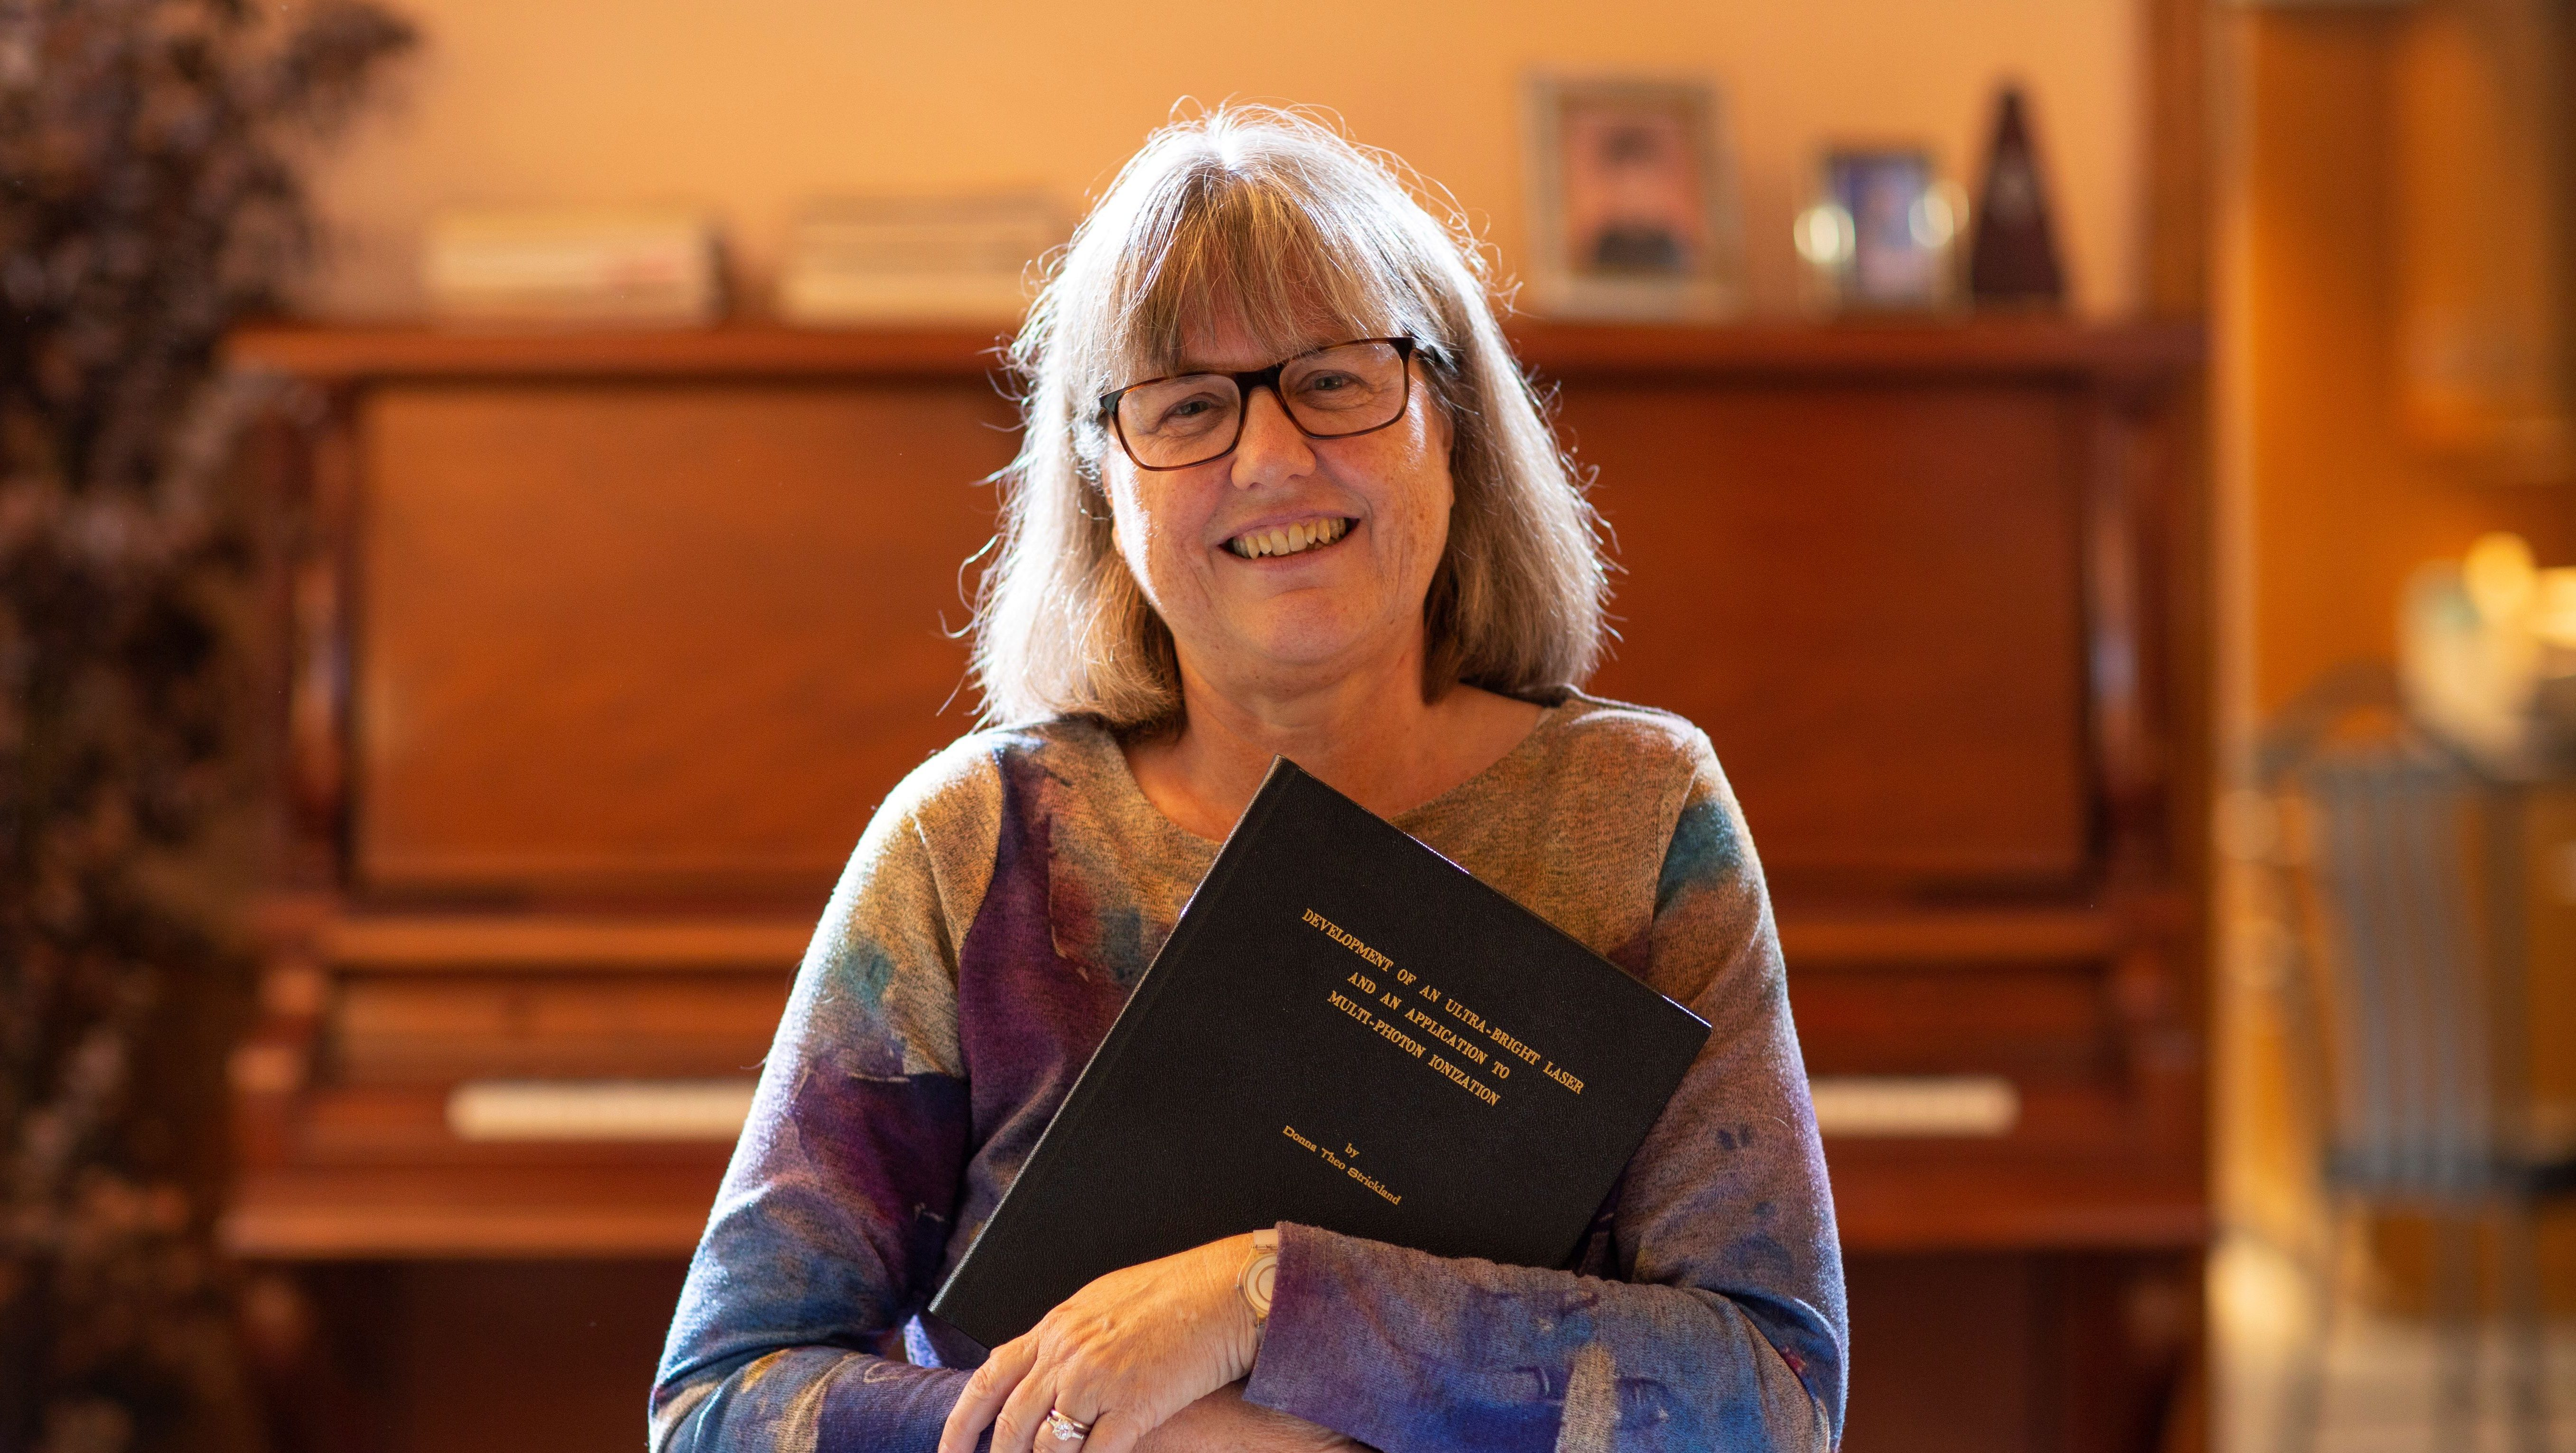 Donna Strickland, an associate professor at the University of Waterloo, poses with her paper that started her career 30 years ago, after winning the Nobel Prize for Physics at her home in Waterloo, Ontario, Canada October 2, 2018.